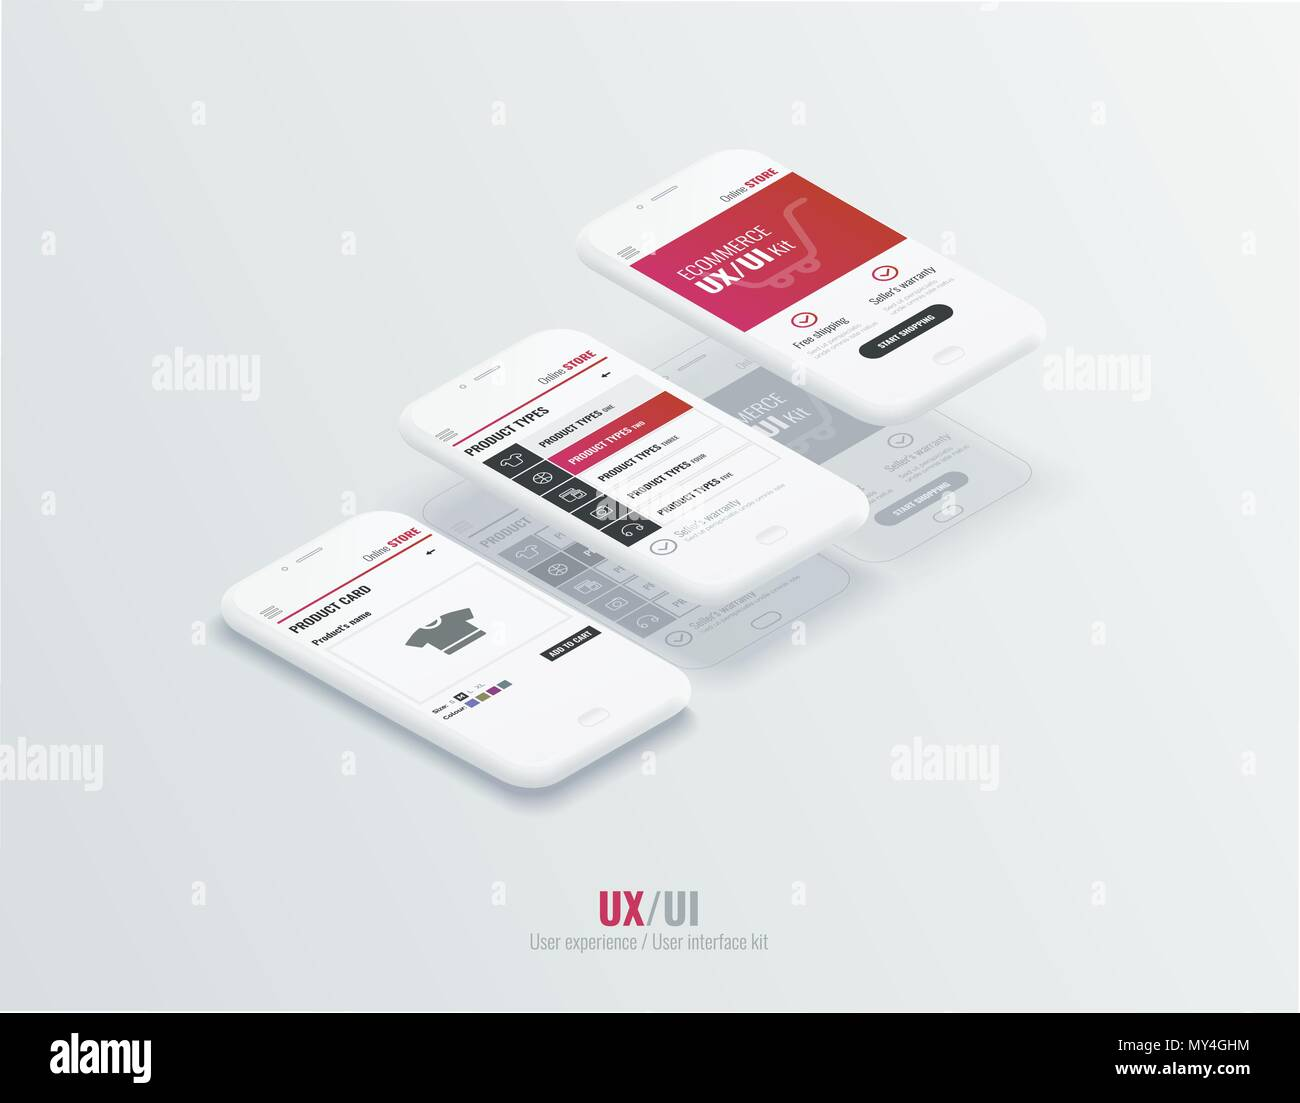 A conceptual mobile phones with a mobile app pagese and website wireframe. User experience, user interface in e-commerce. Website wireframe for mobile apps - Stock Image